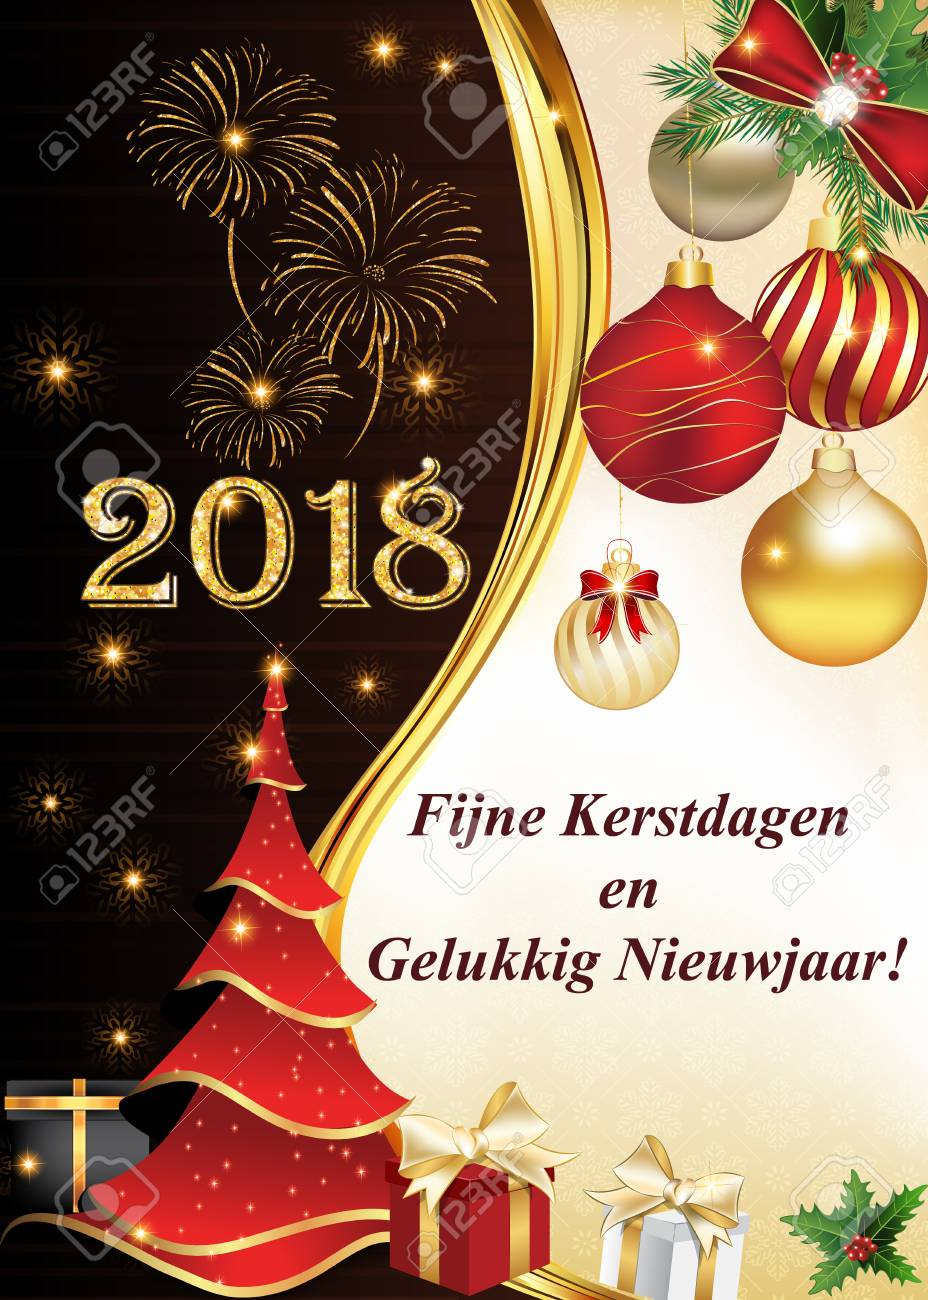 Merry Christmas In Dutch.Merry Christmas And A Happy New Year 2018 Written In Dutch